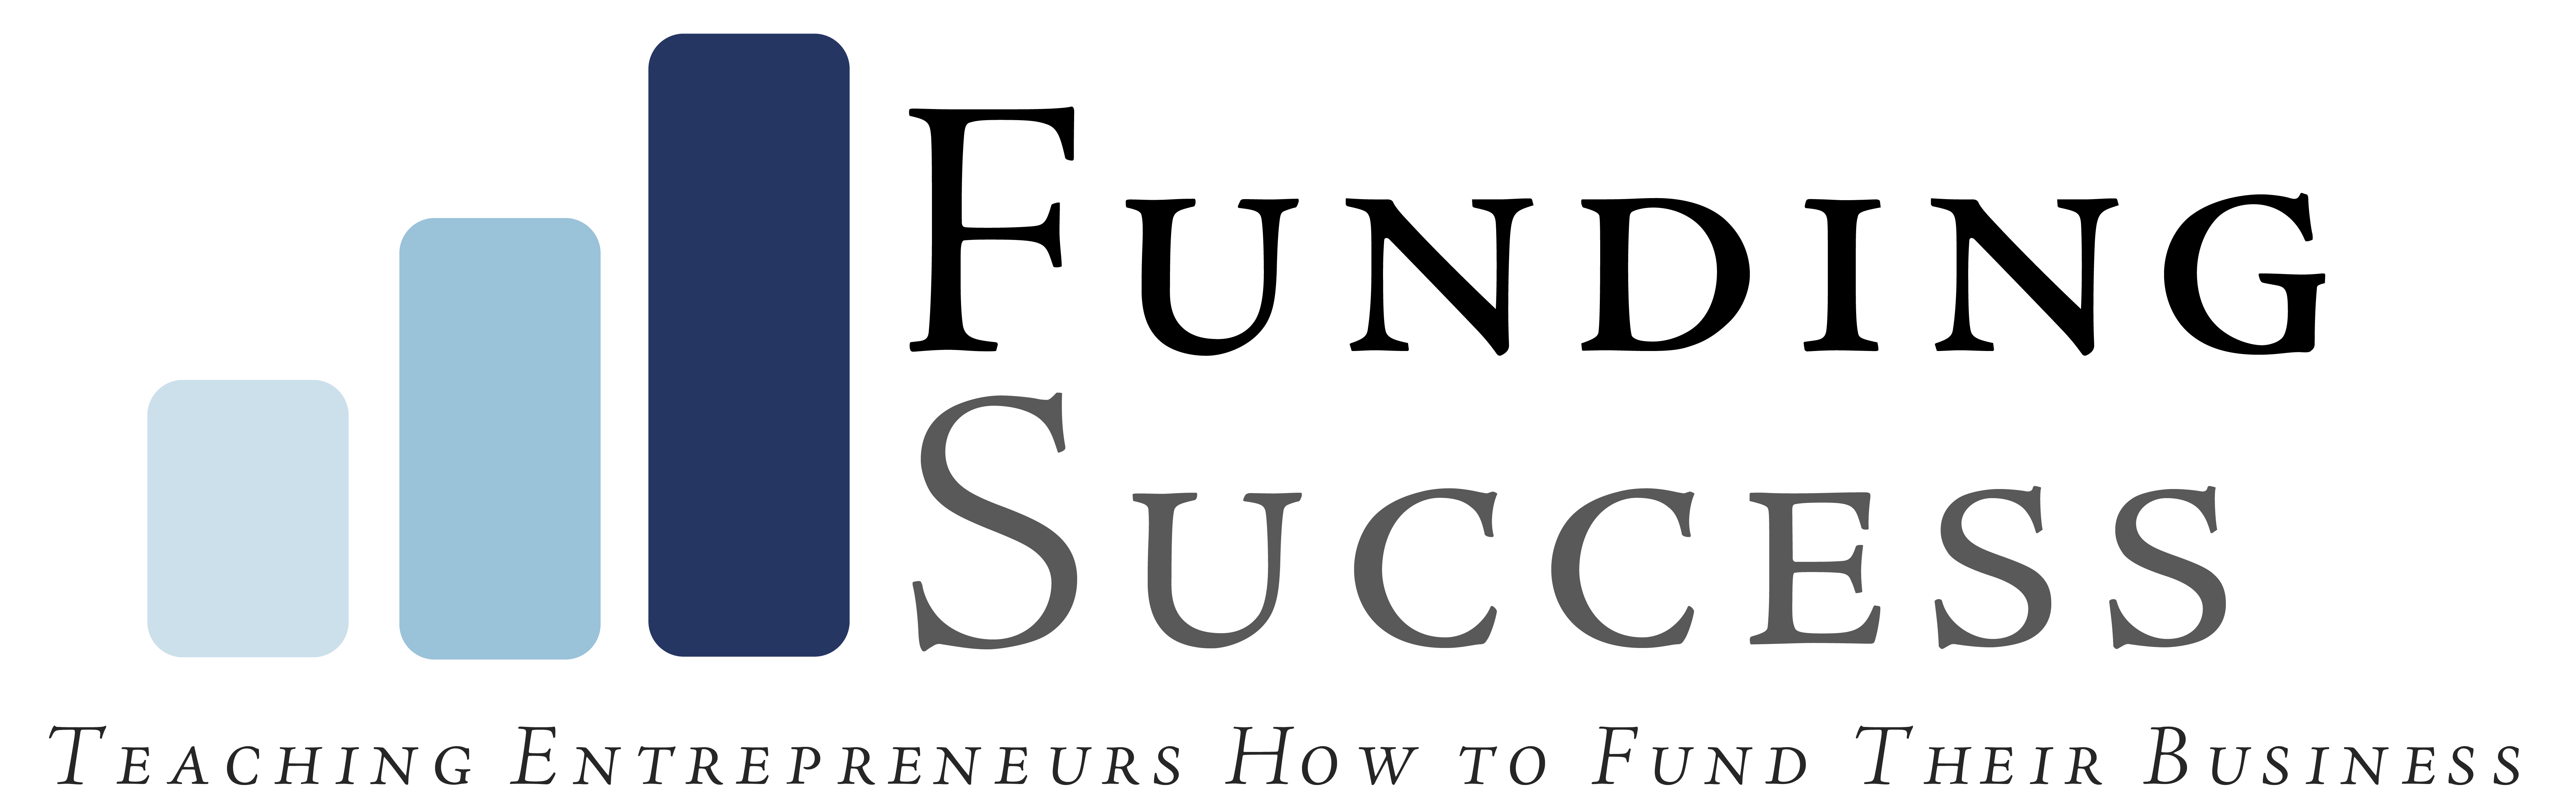 FundingSuccess.com